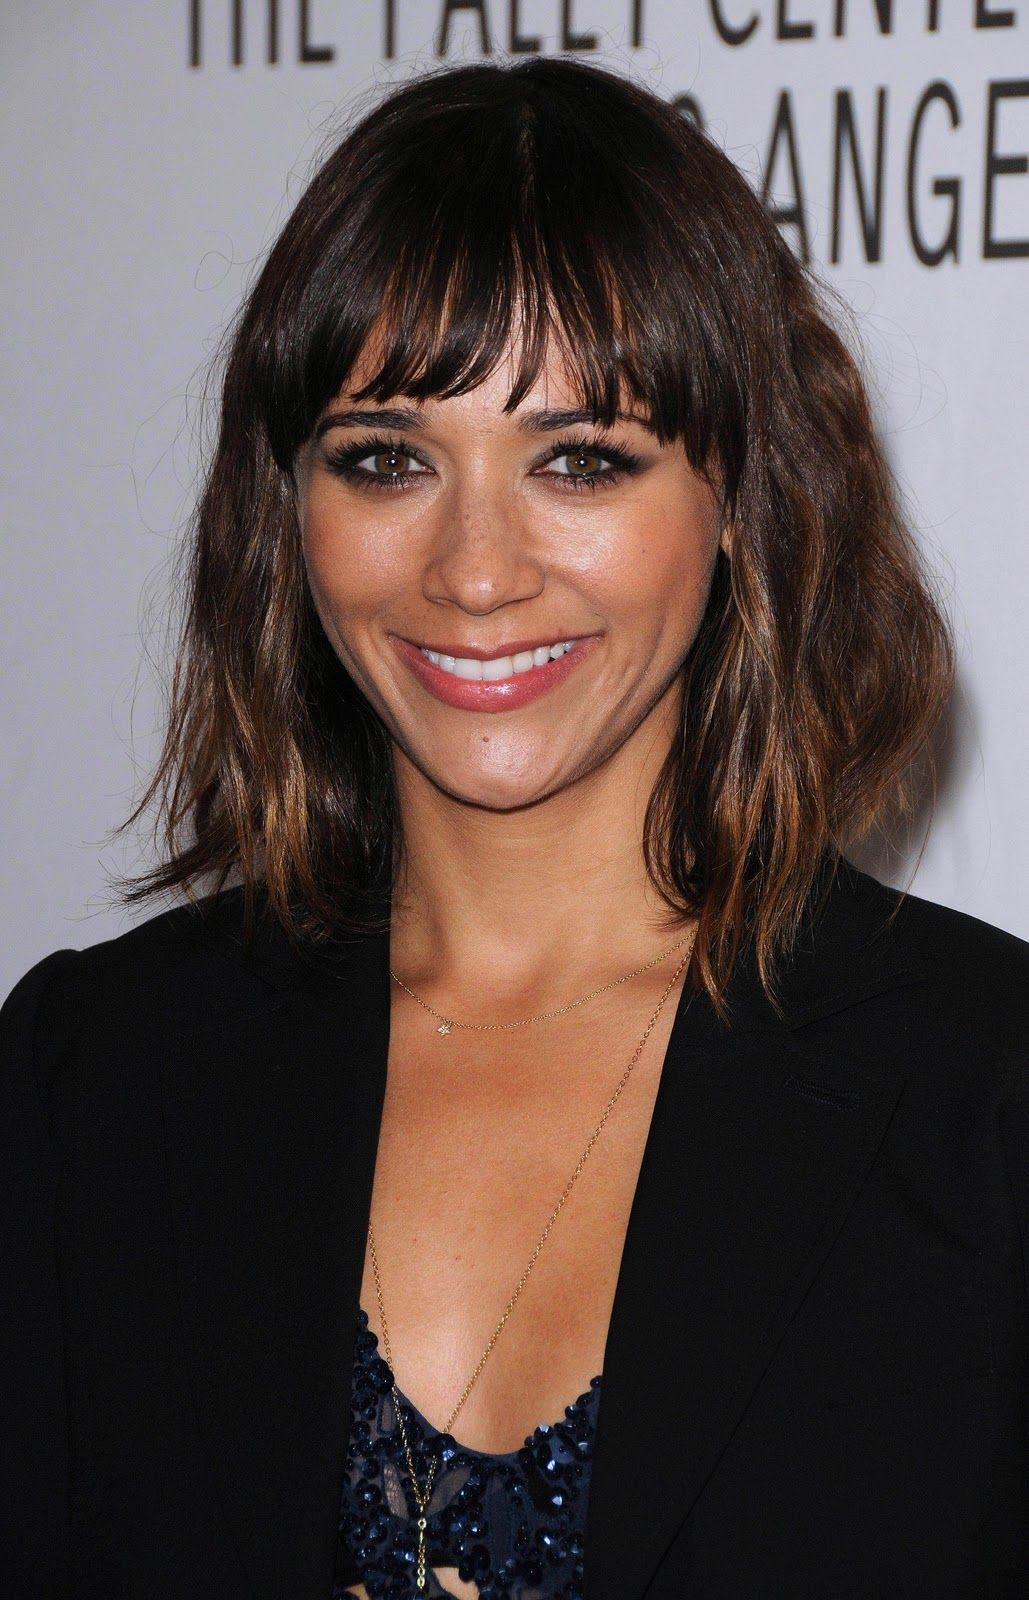 Fall Haircut Rashida Jones Oh My Prunes I Love Her She Is So